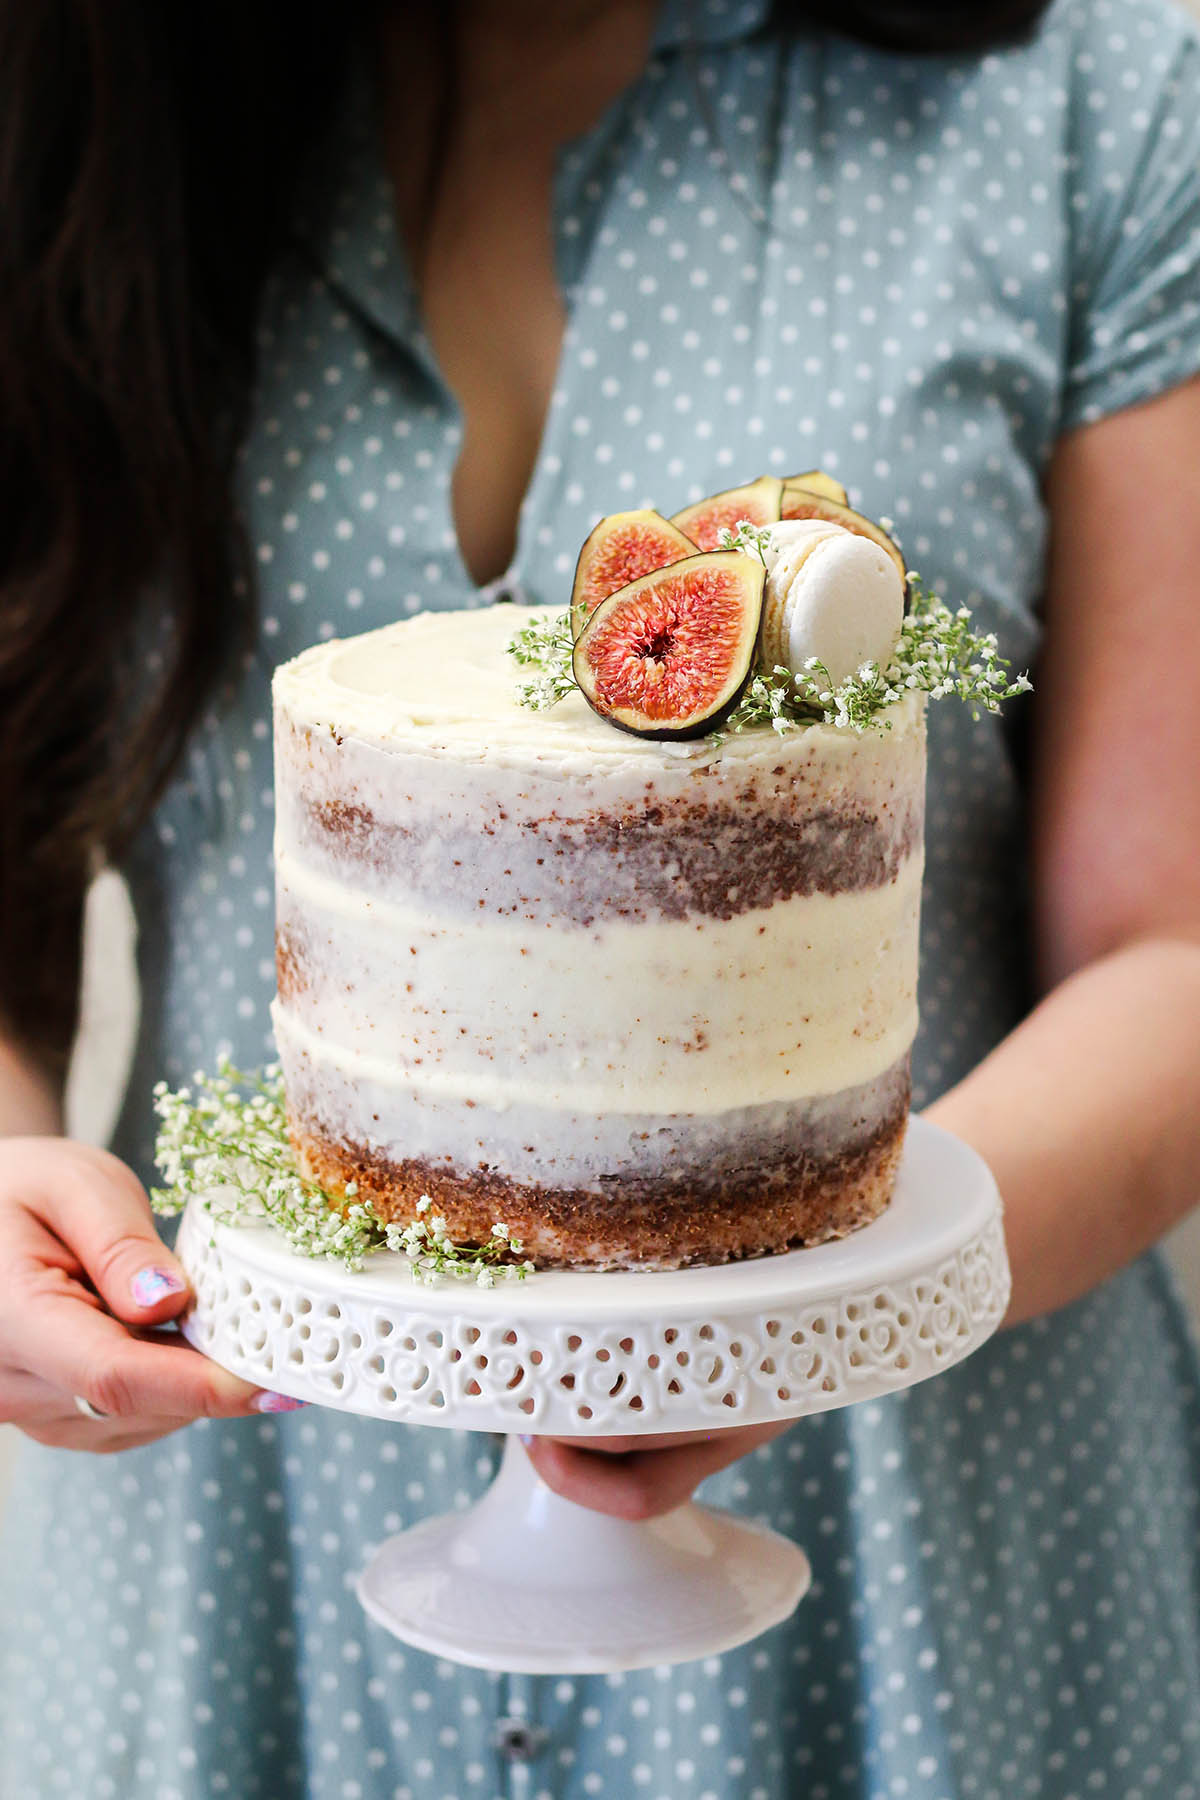 Woman in blue polka dot dress holding a layer cake on a white cake stand.